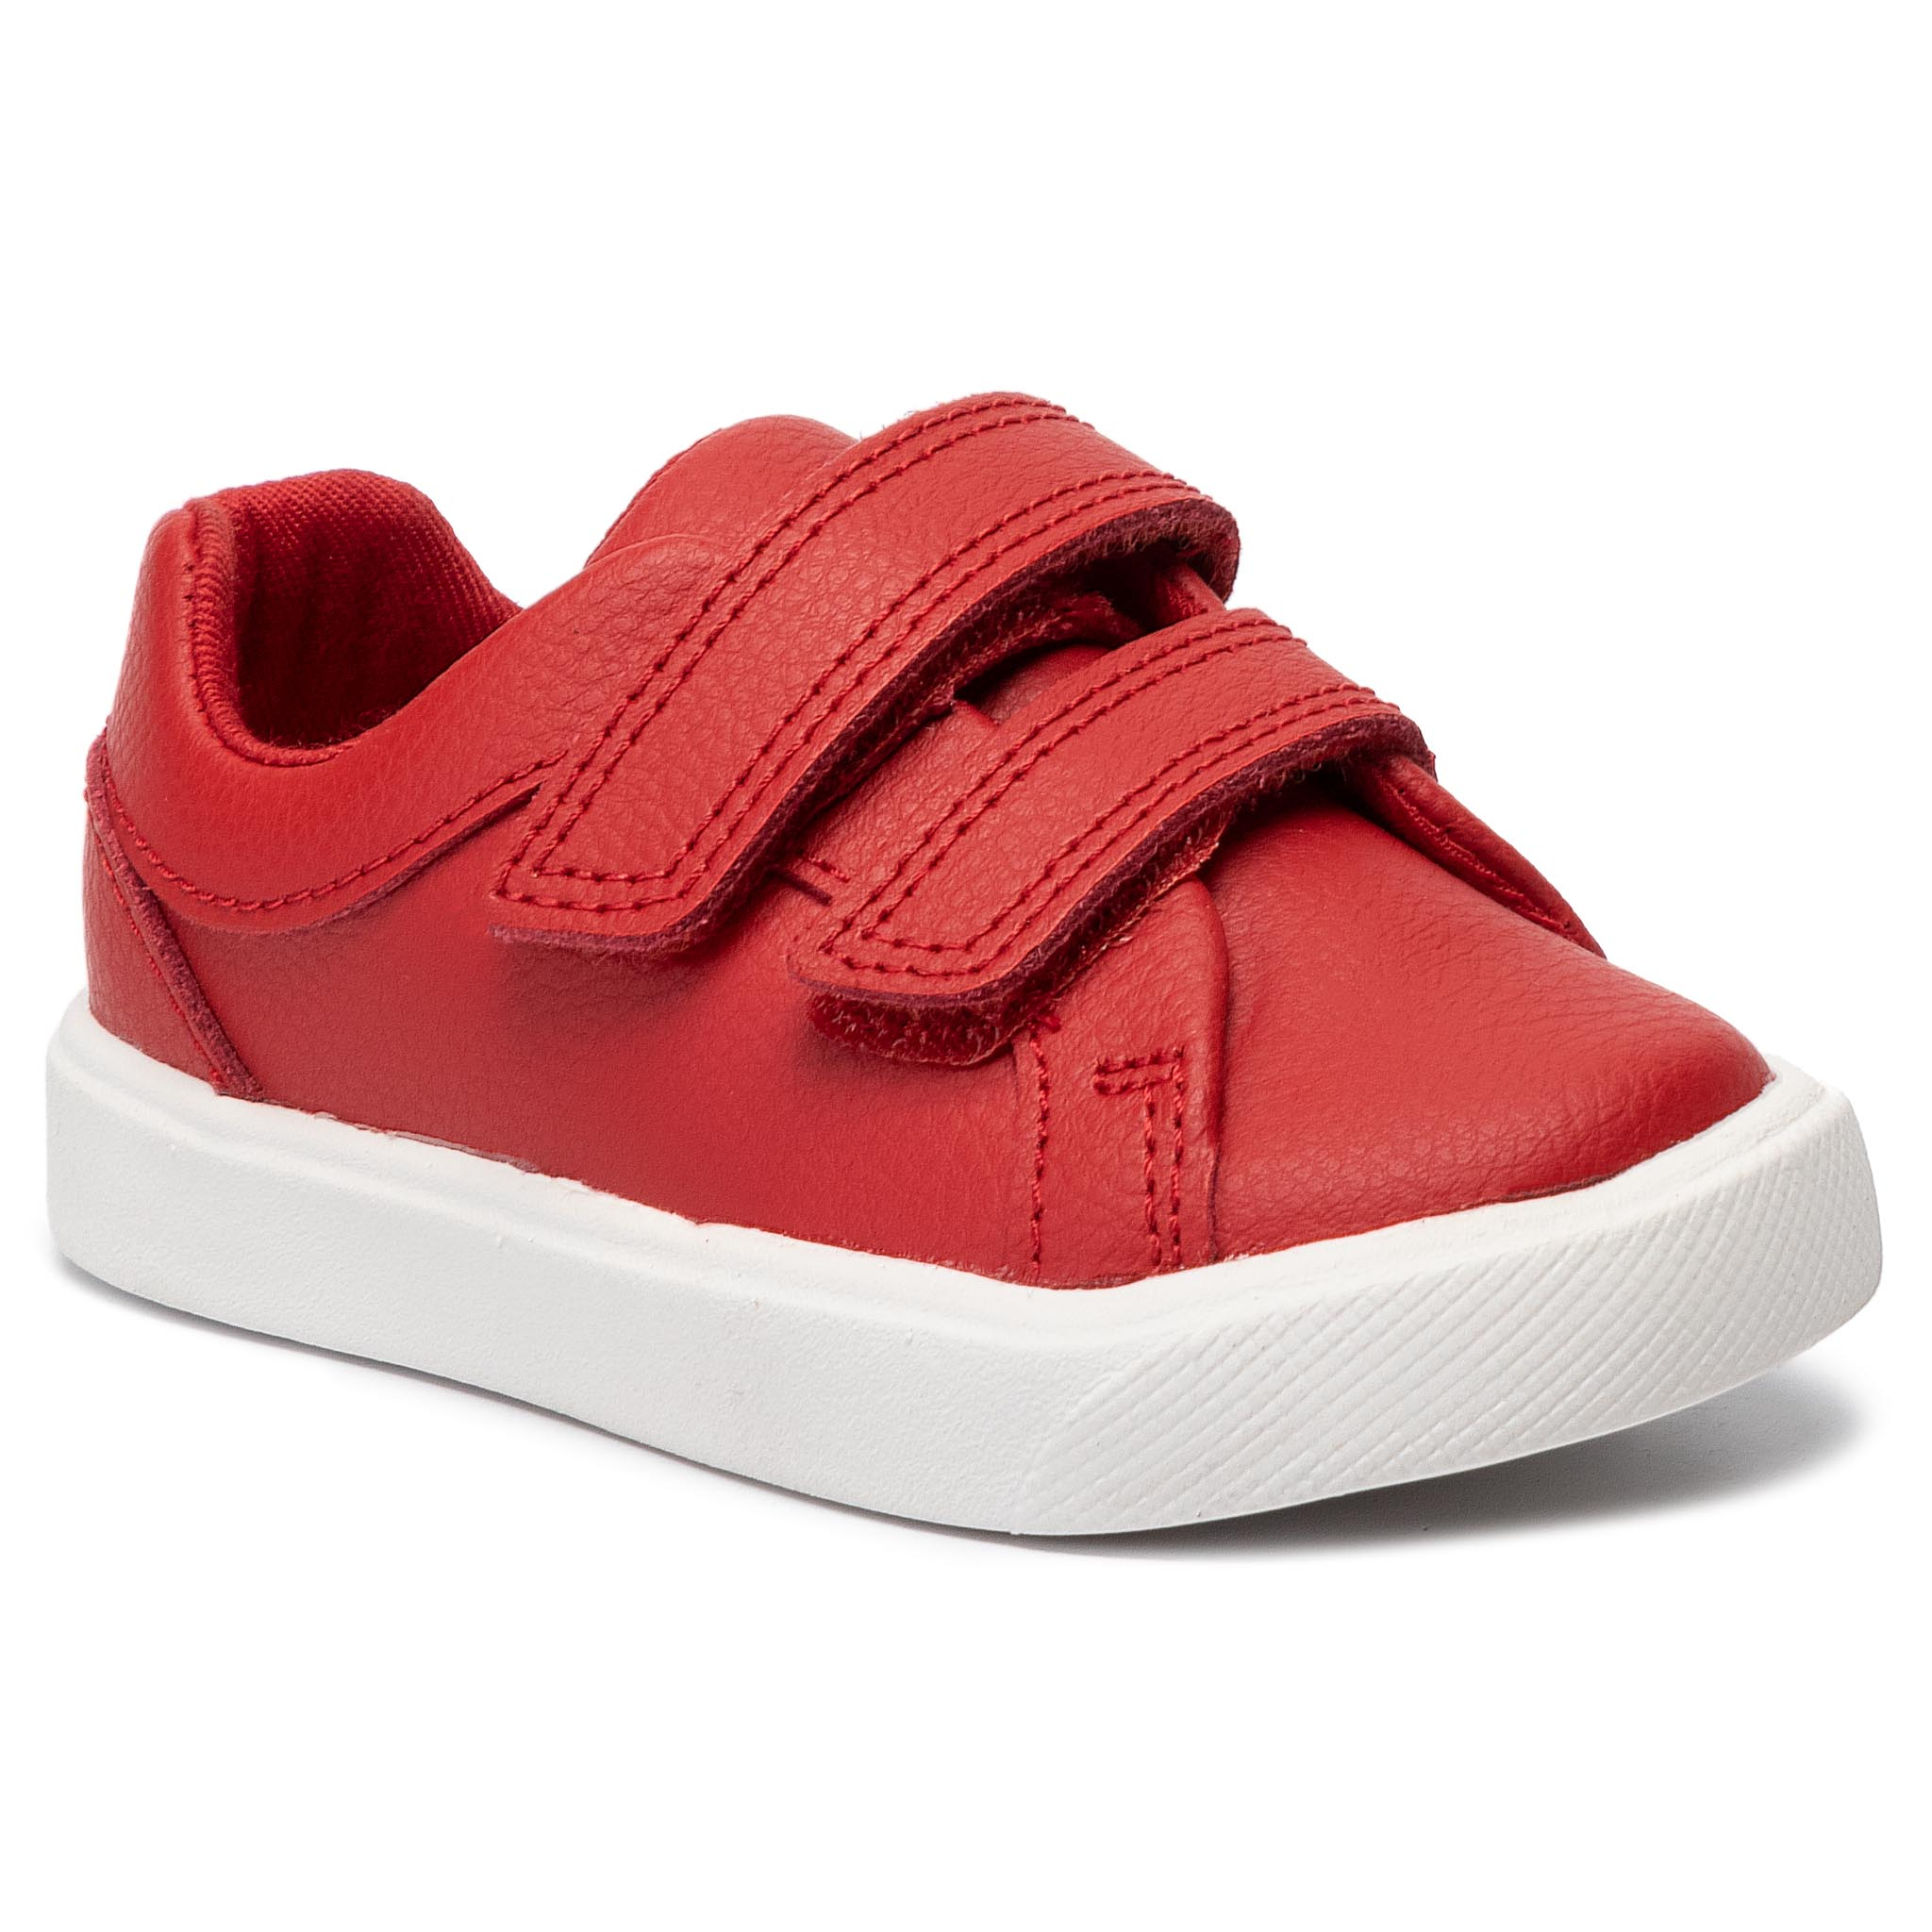 Sneakers CLARKS - City OasisLo T 261432547  Red Leather